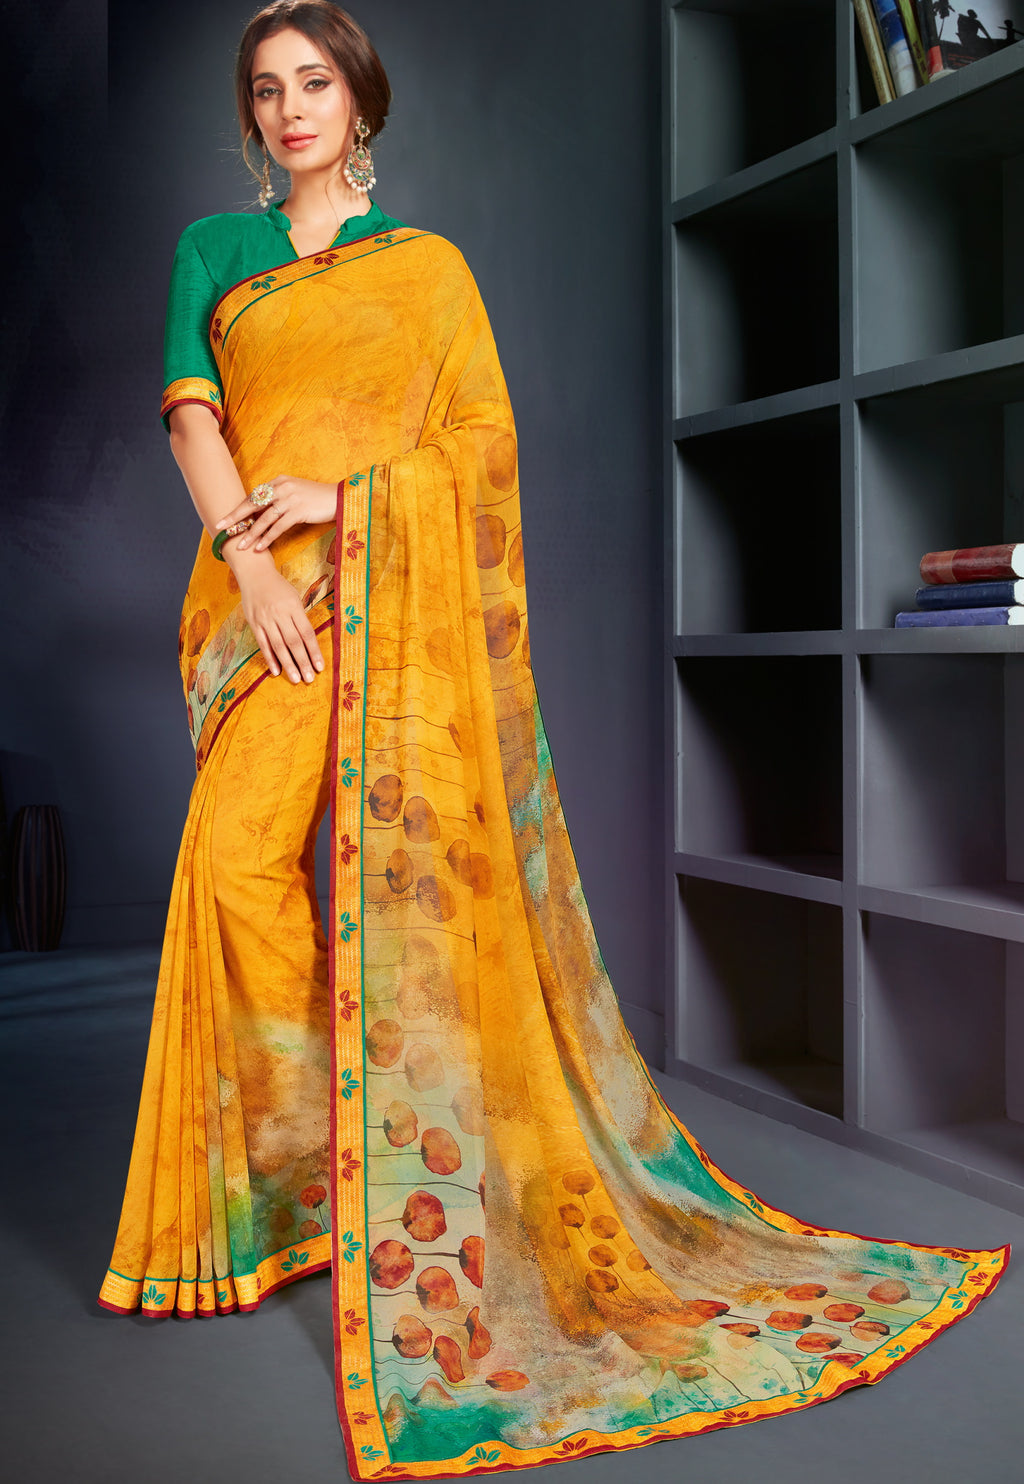 Mango Yellow Color Georgette Printed Office Wear Sarees NYF-4498